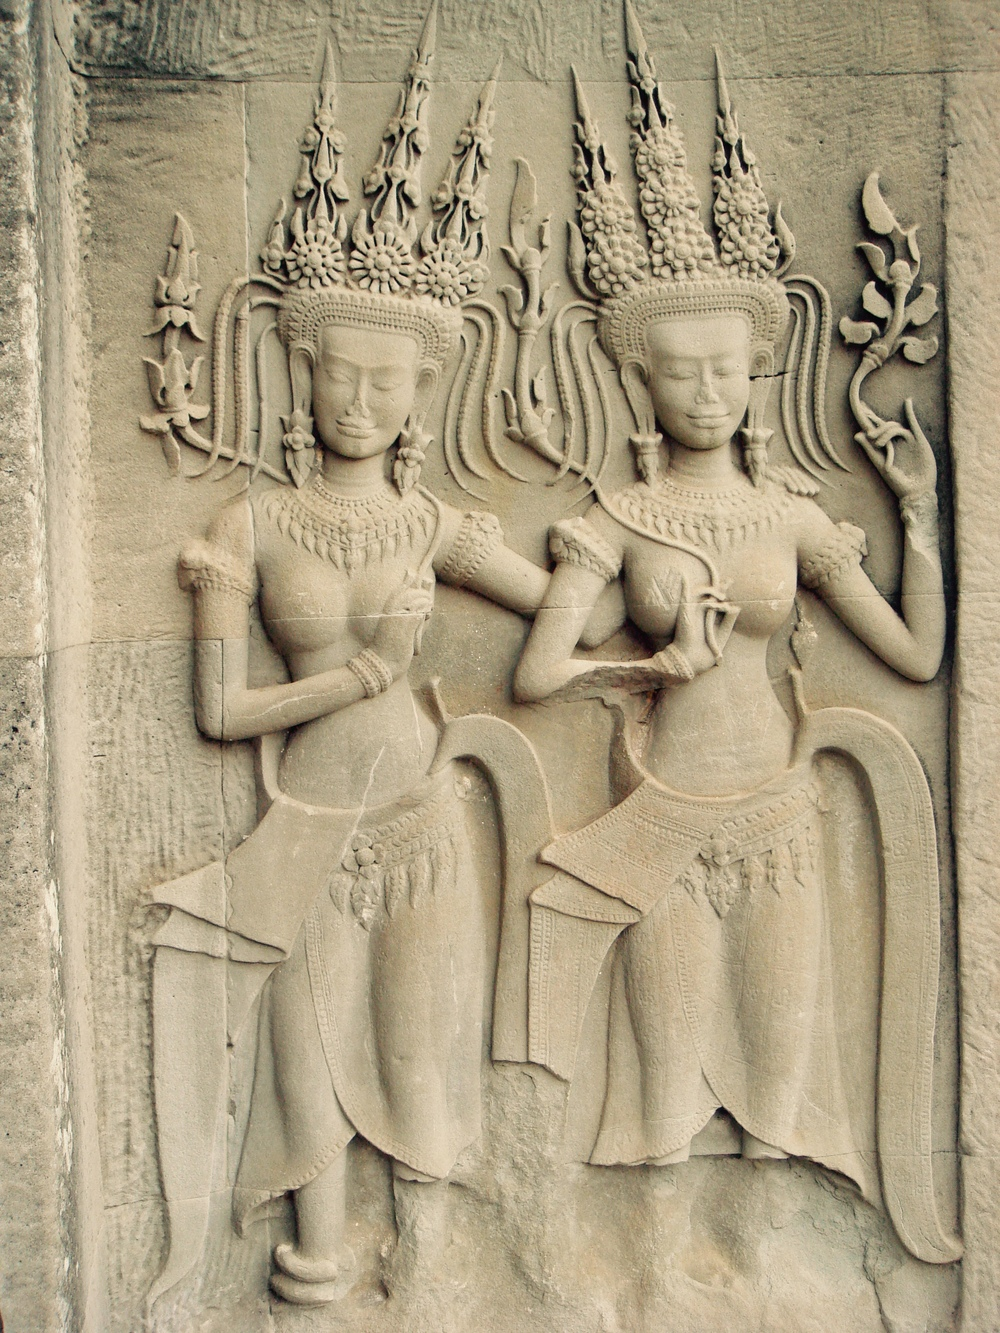 These incredibly detailed nymphs can be found all over the Angkor Wat temple (there are more than 3,000 of them!)